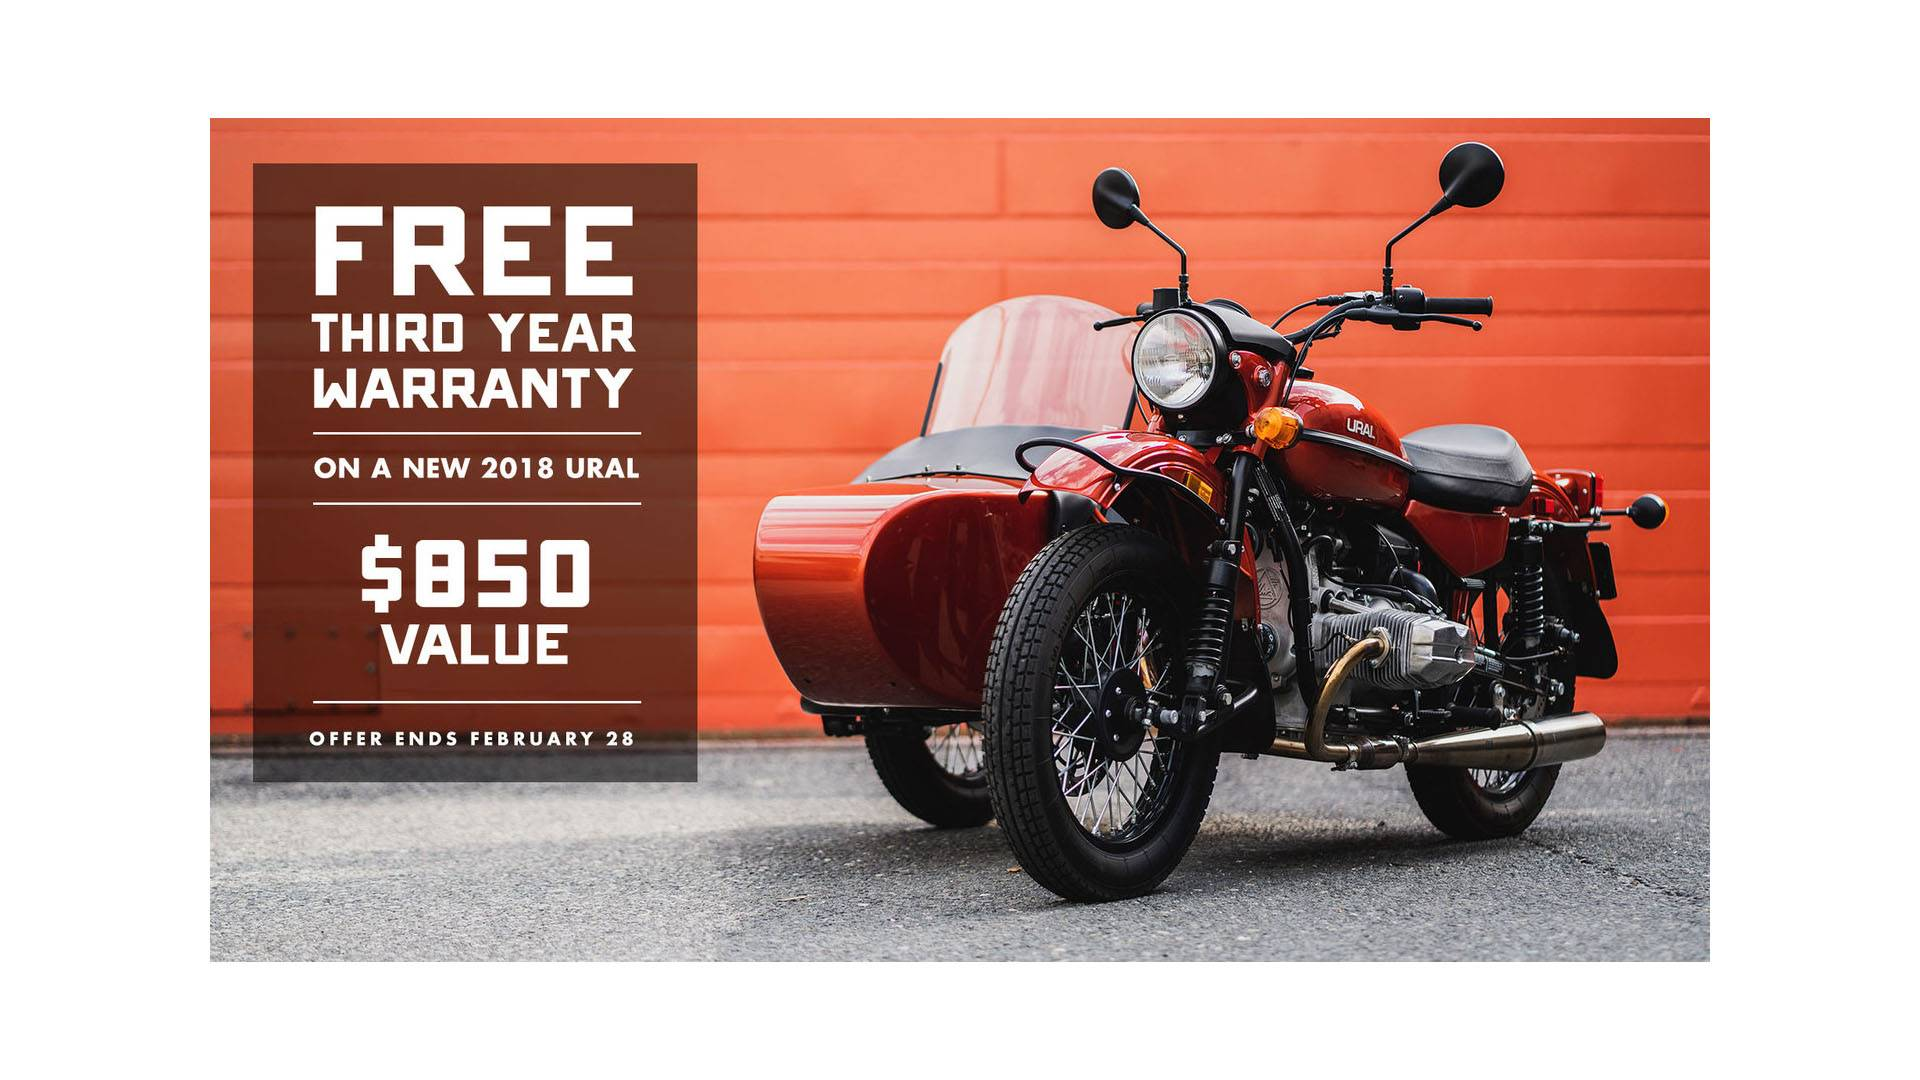 Ural Russian Motorcycles - Free Third Year Warranty